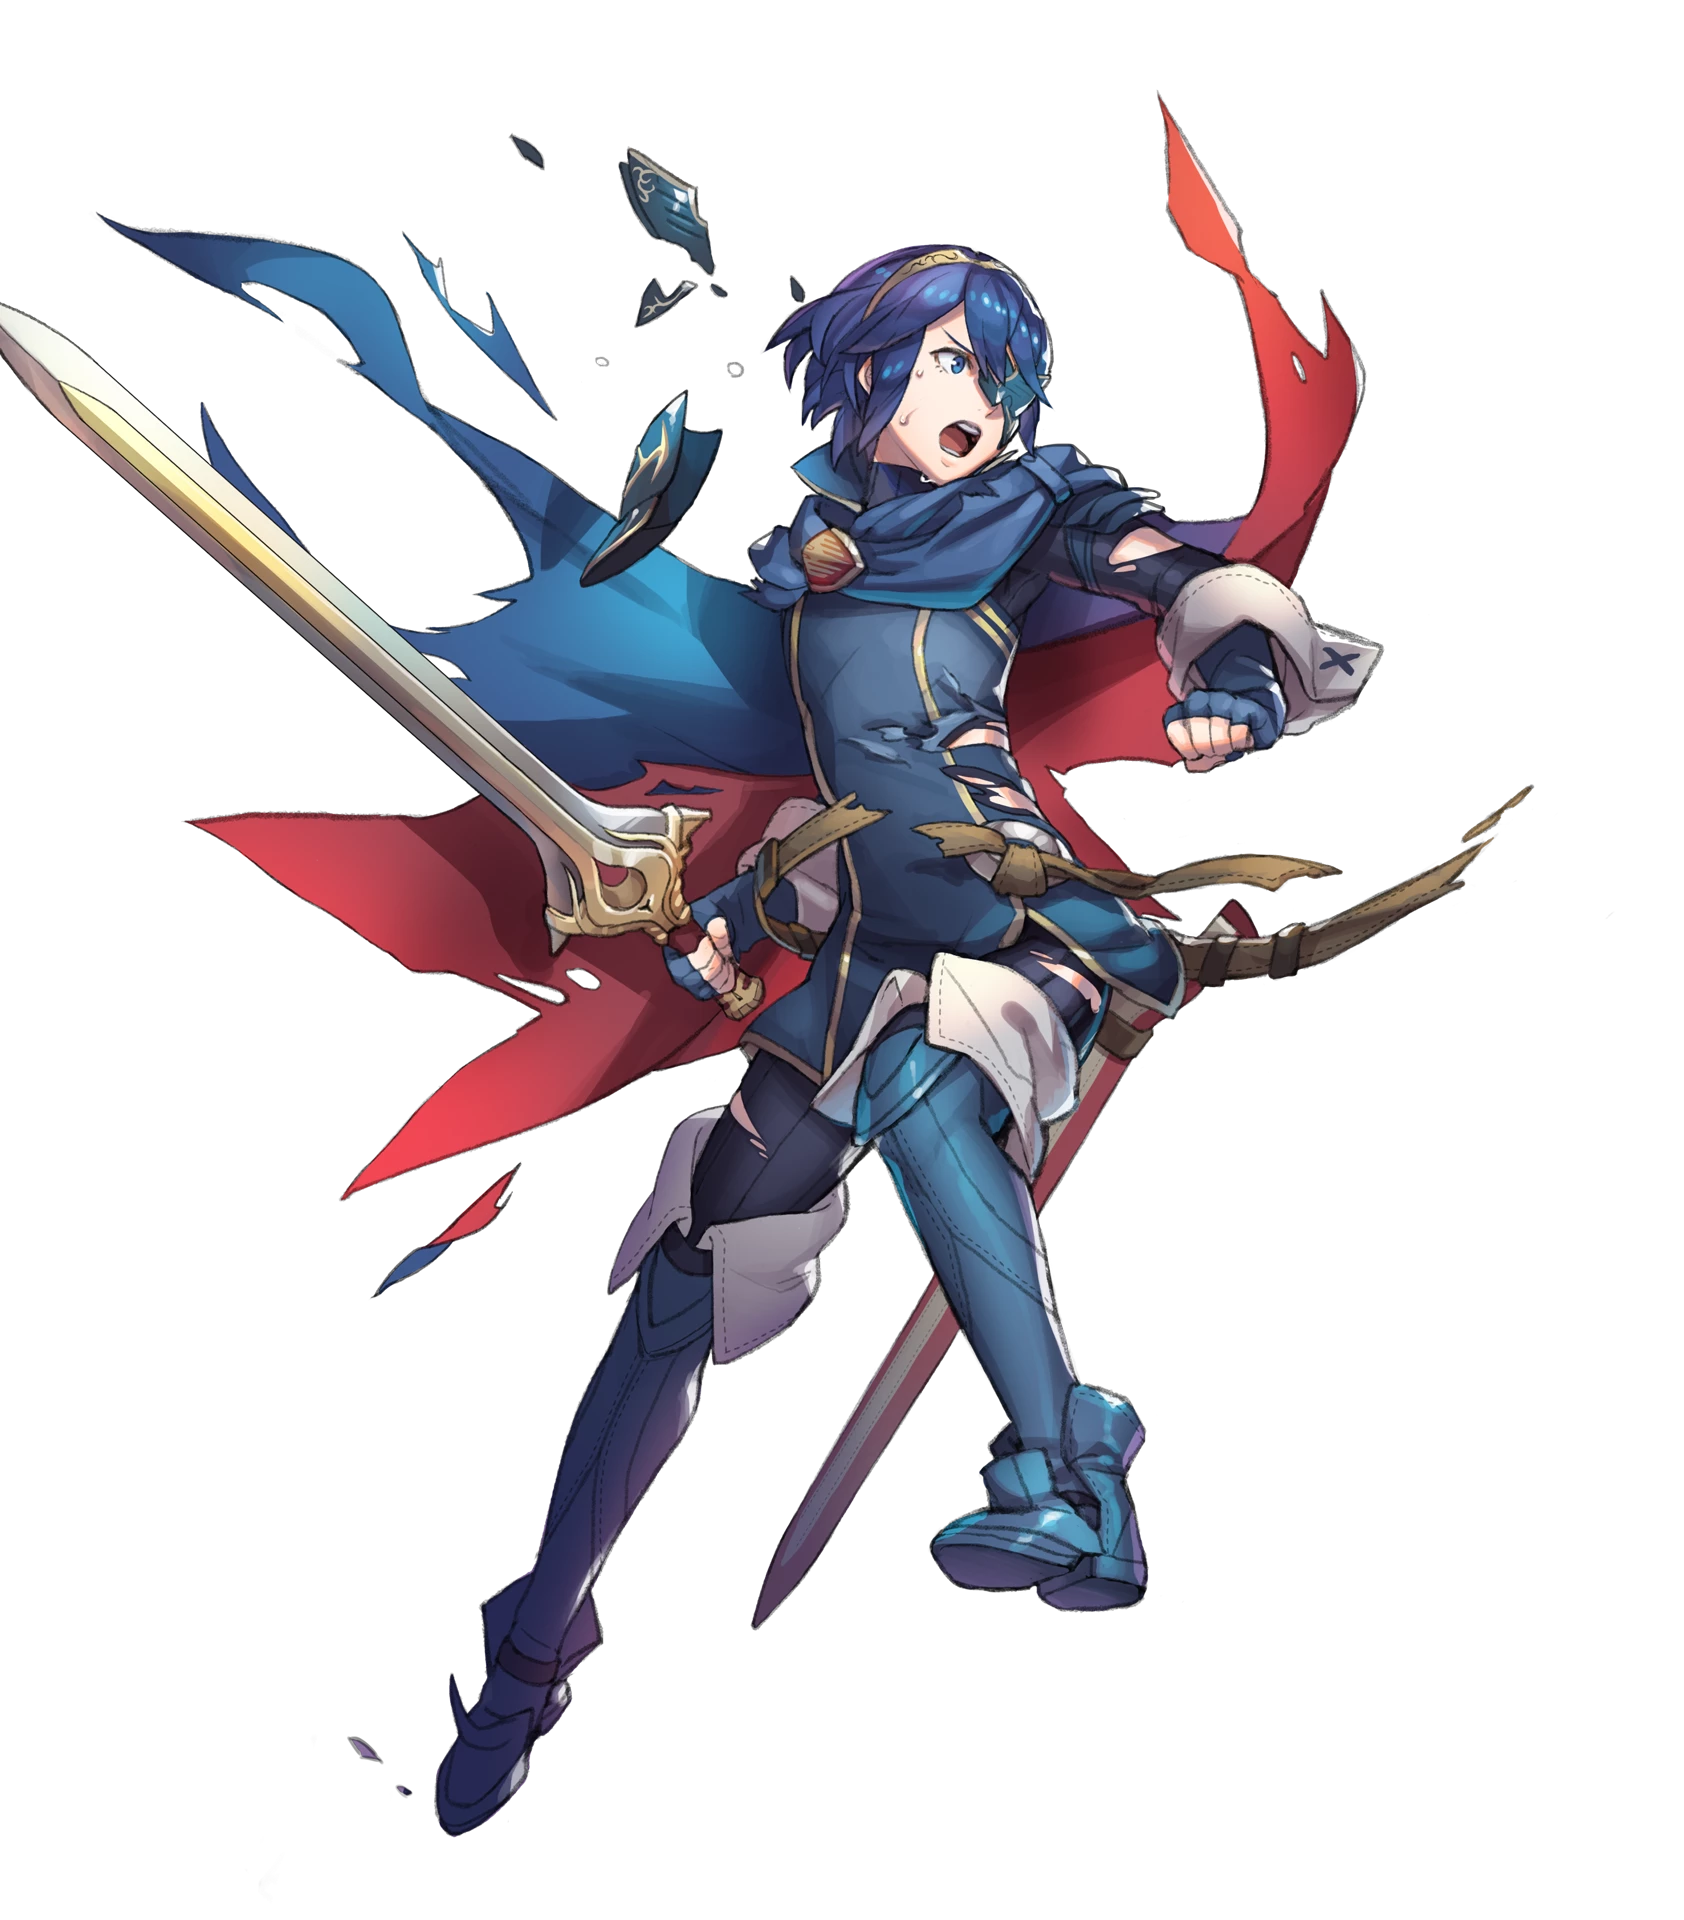 Full_Injured_Lucina_(Masked).png (PNG Image, 1684 × 1920